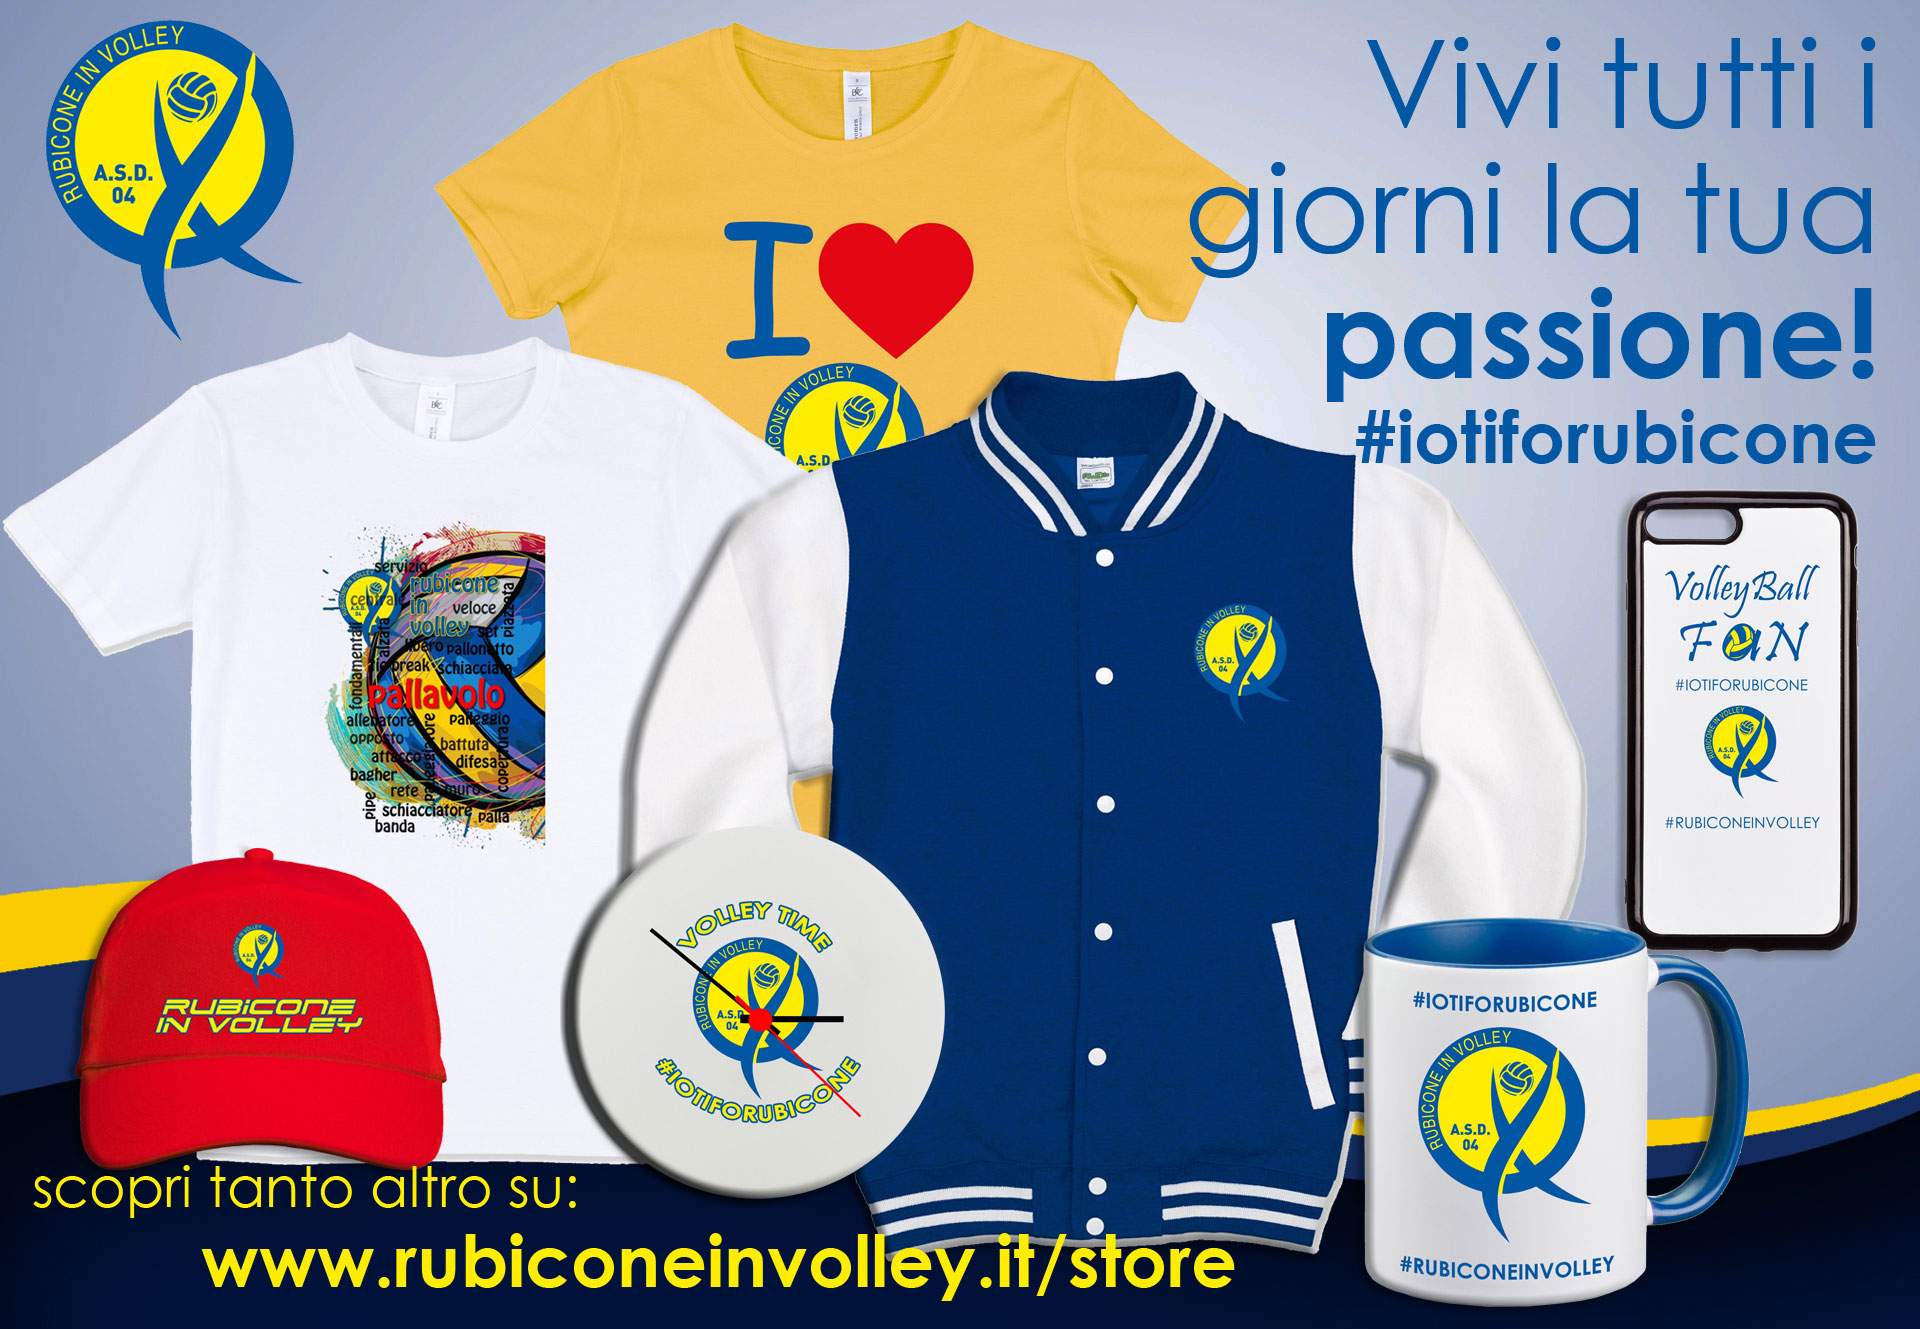 Rubicone In Volley merchandising store